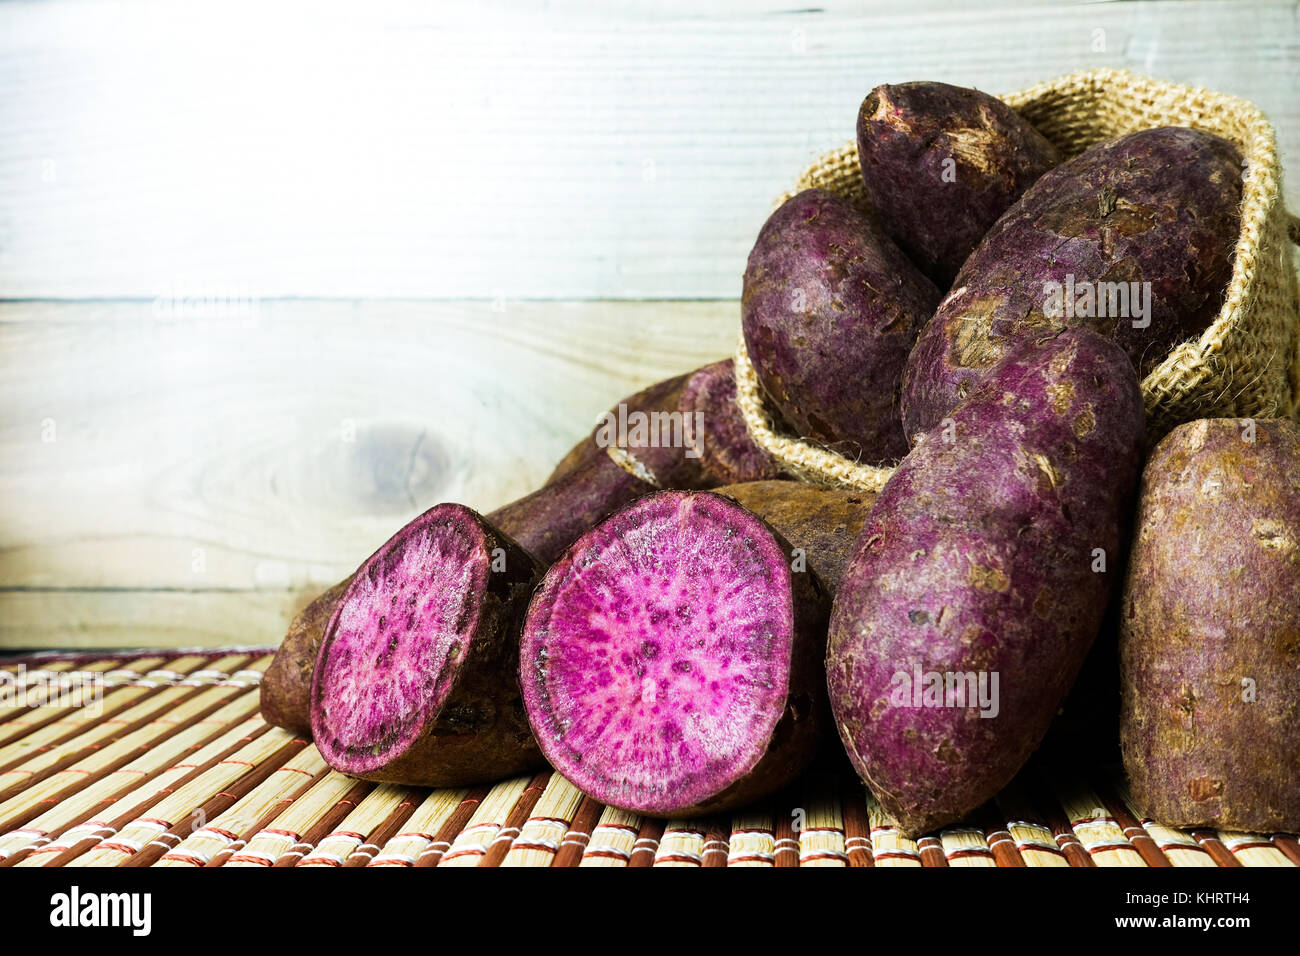 how to cook japanese sweet potato